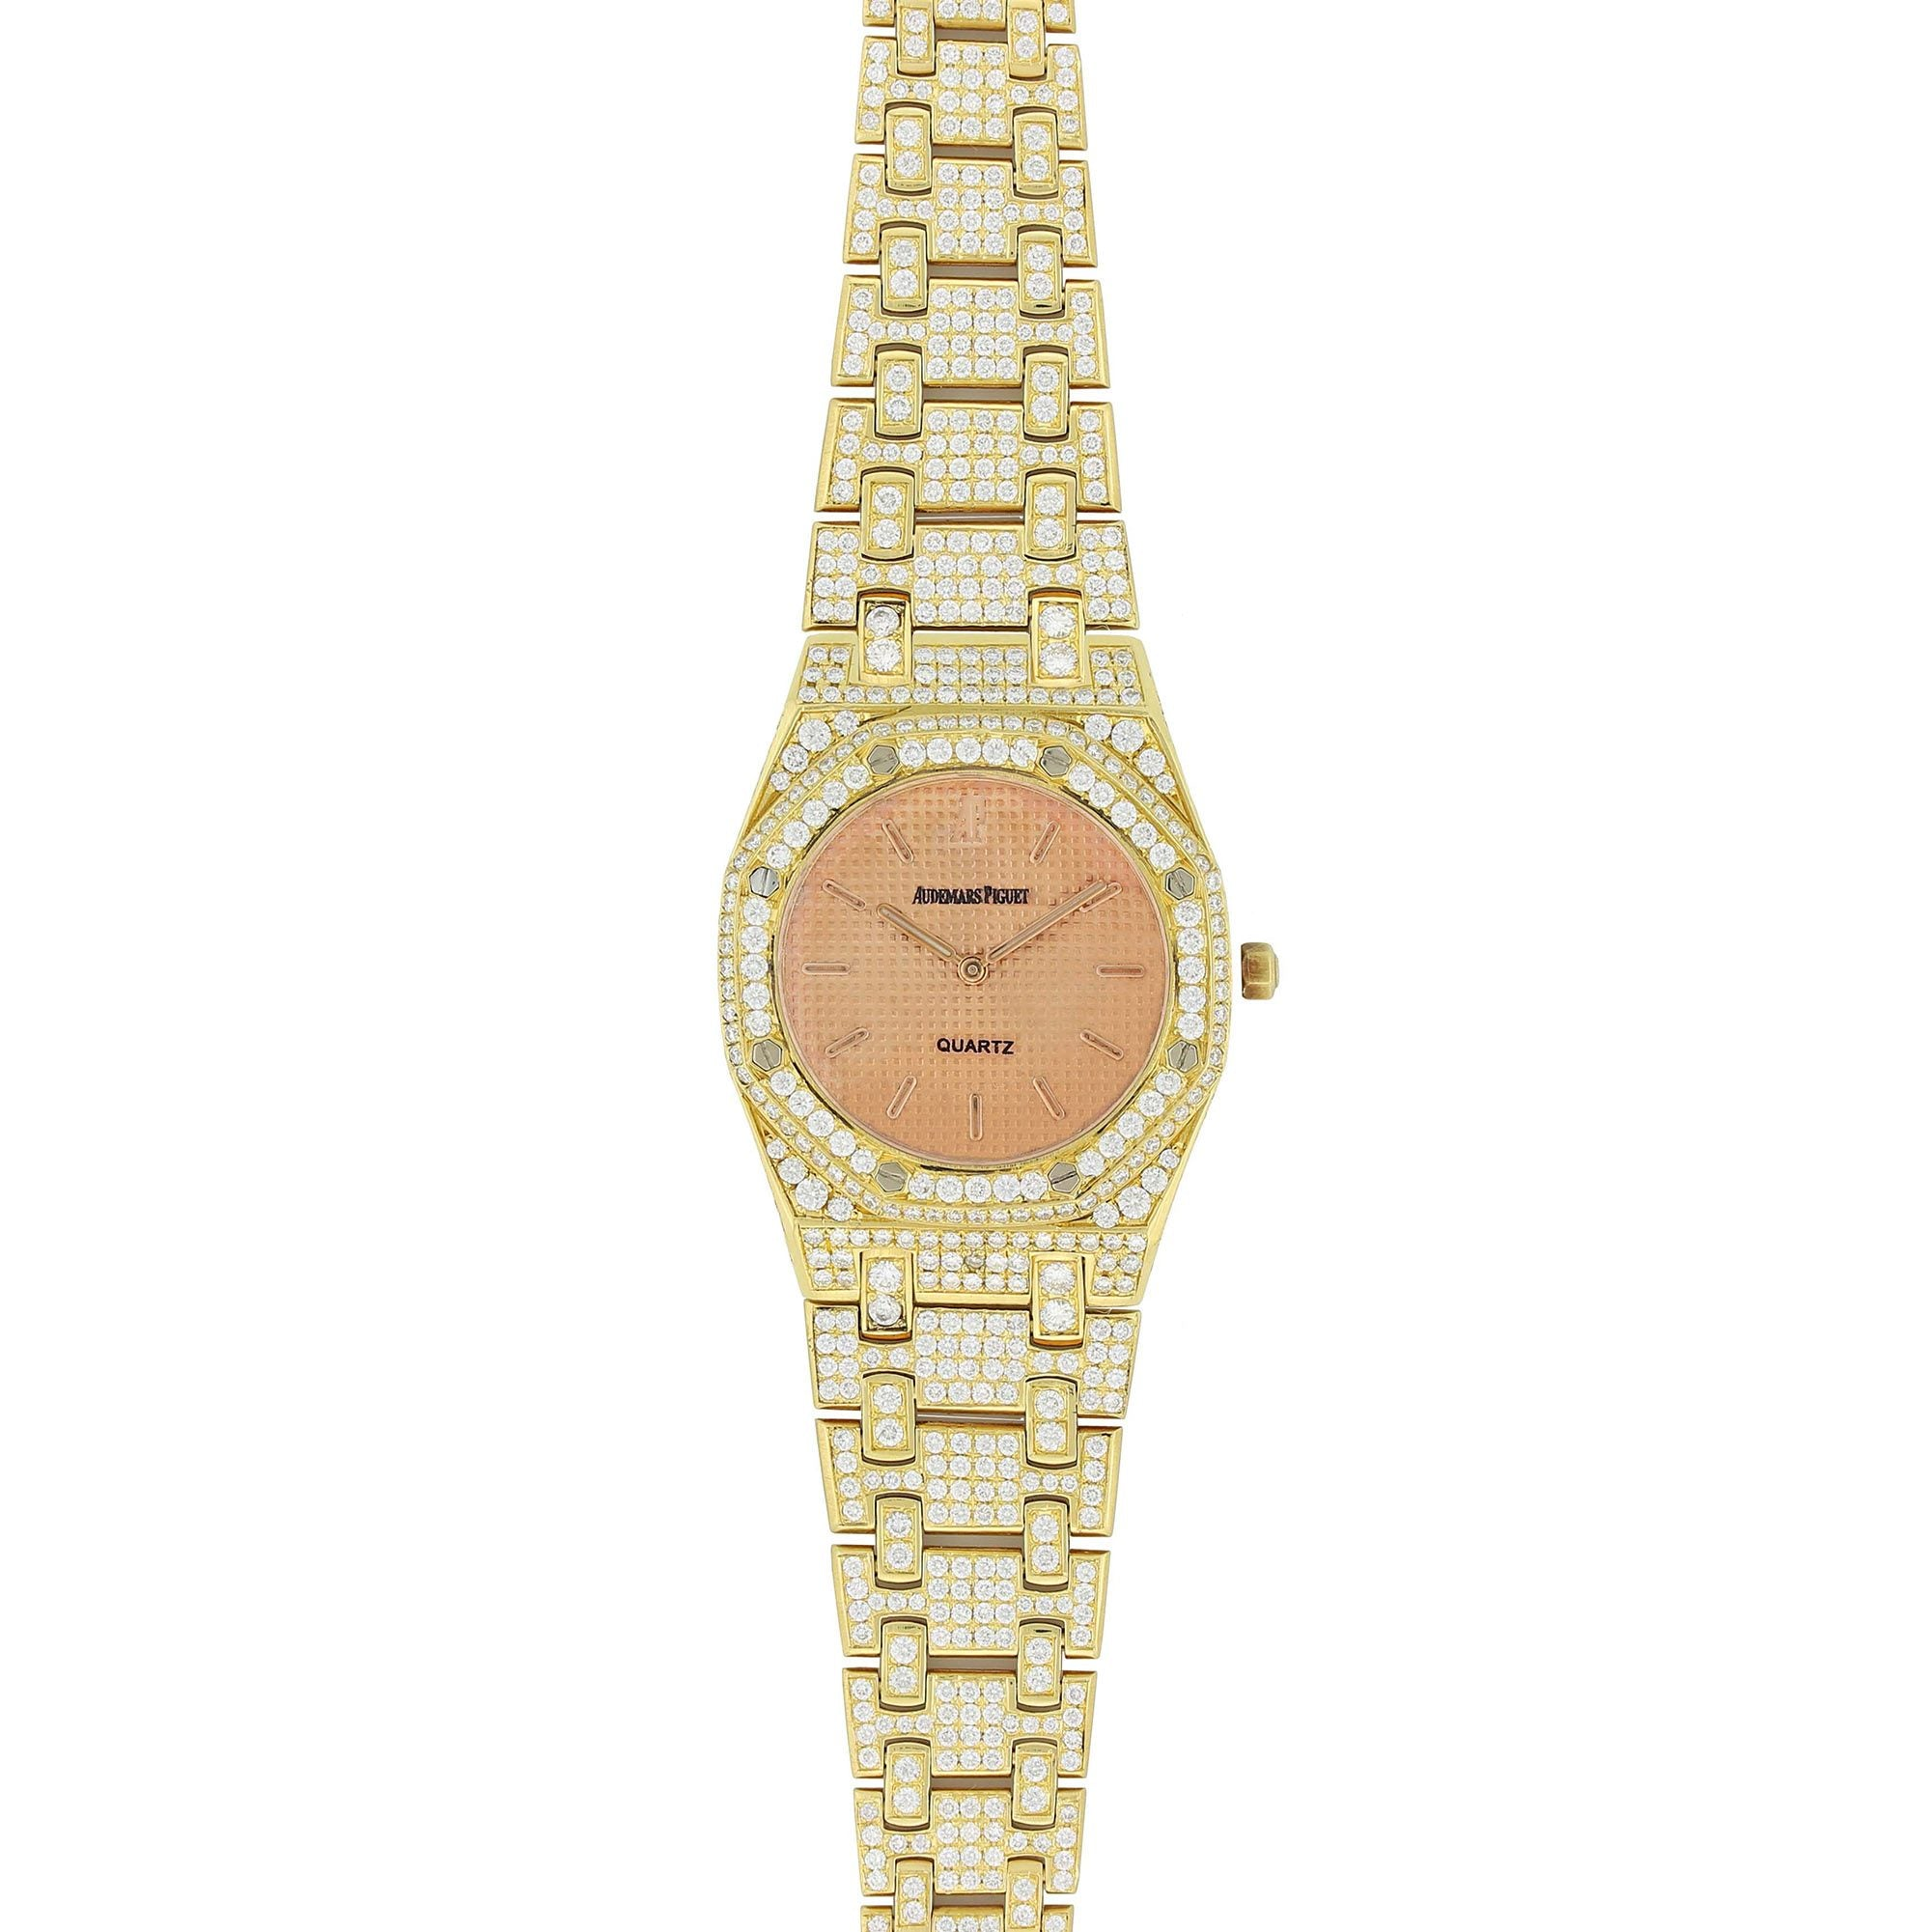 Audemars Piguet Royal Oak Lady 33MM 18K Yellow Gold 67600BA.OO.1210BA.01